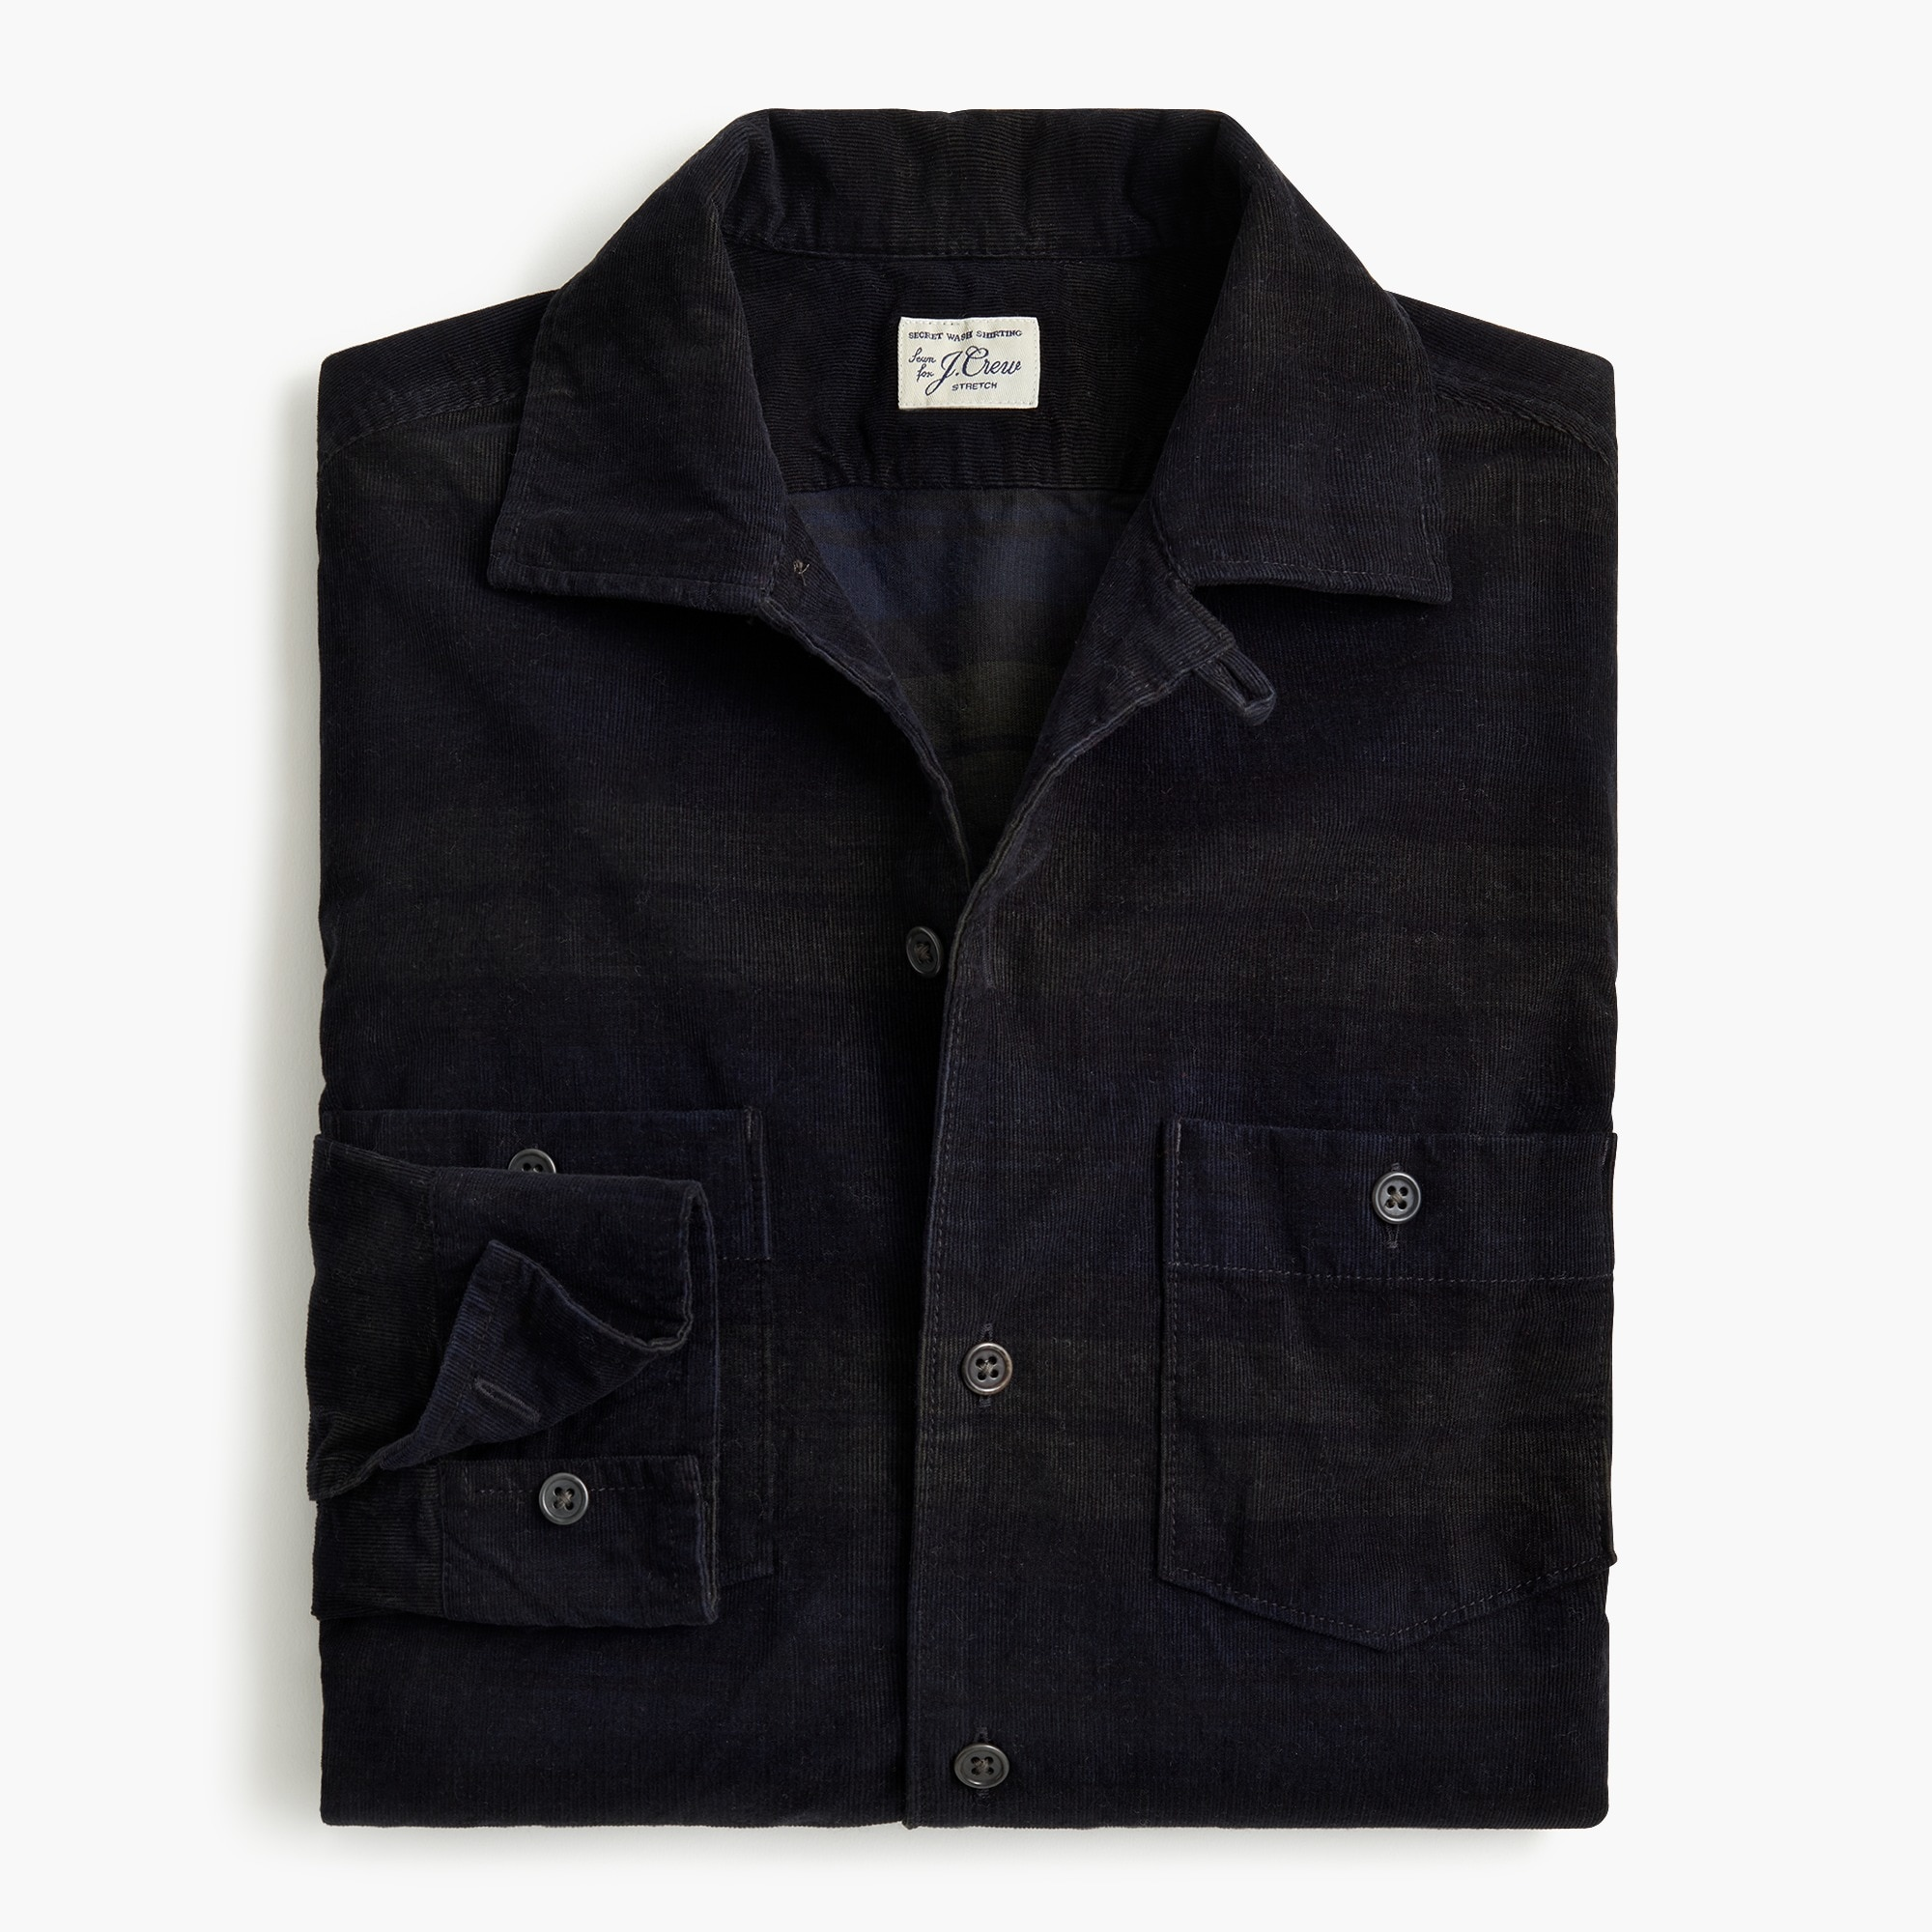 mens Stretch corduroy workshirt in Black Watch tartan